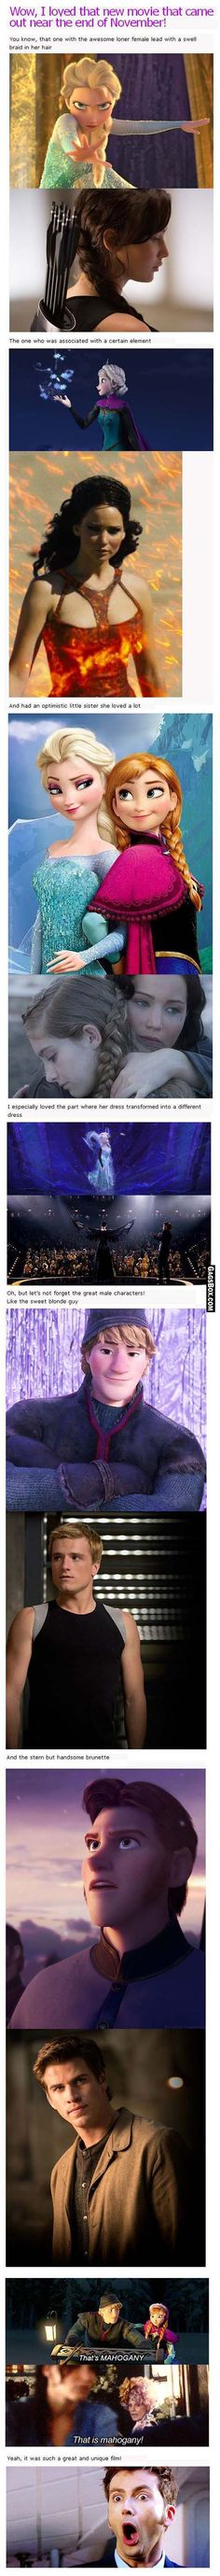 Disney Frozen Movie Vs Hunger Games - two great movies for sisters! Oh goodness..